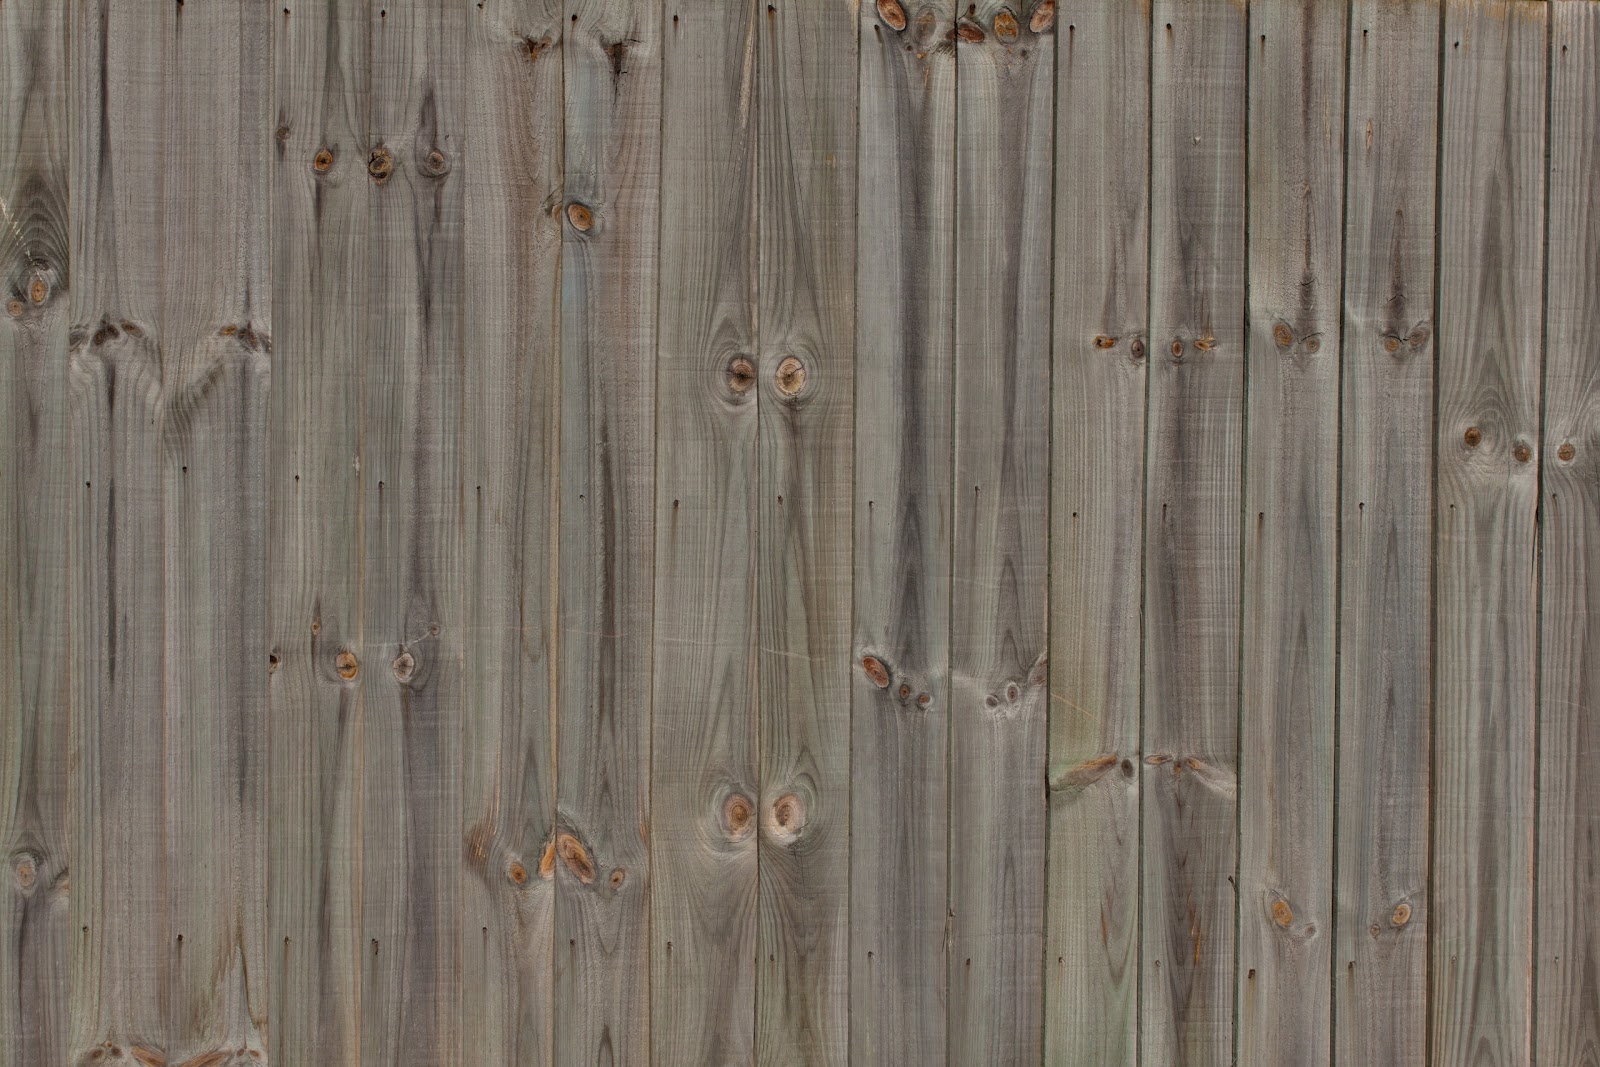 Wood Fence Texture : Wood Fence Sep Texture